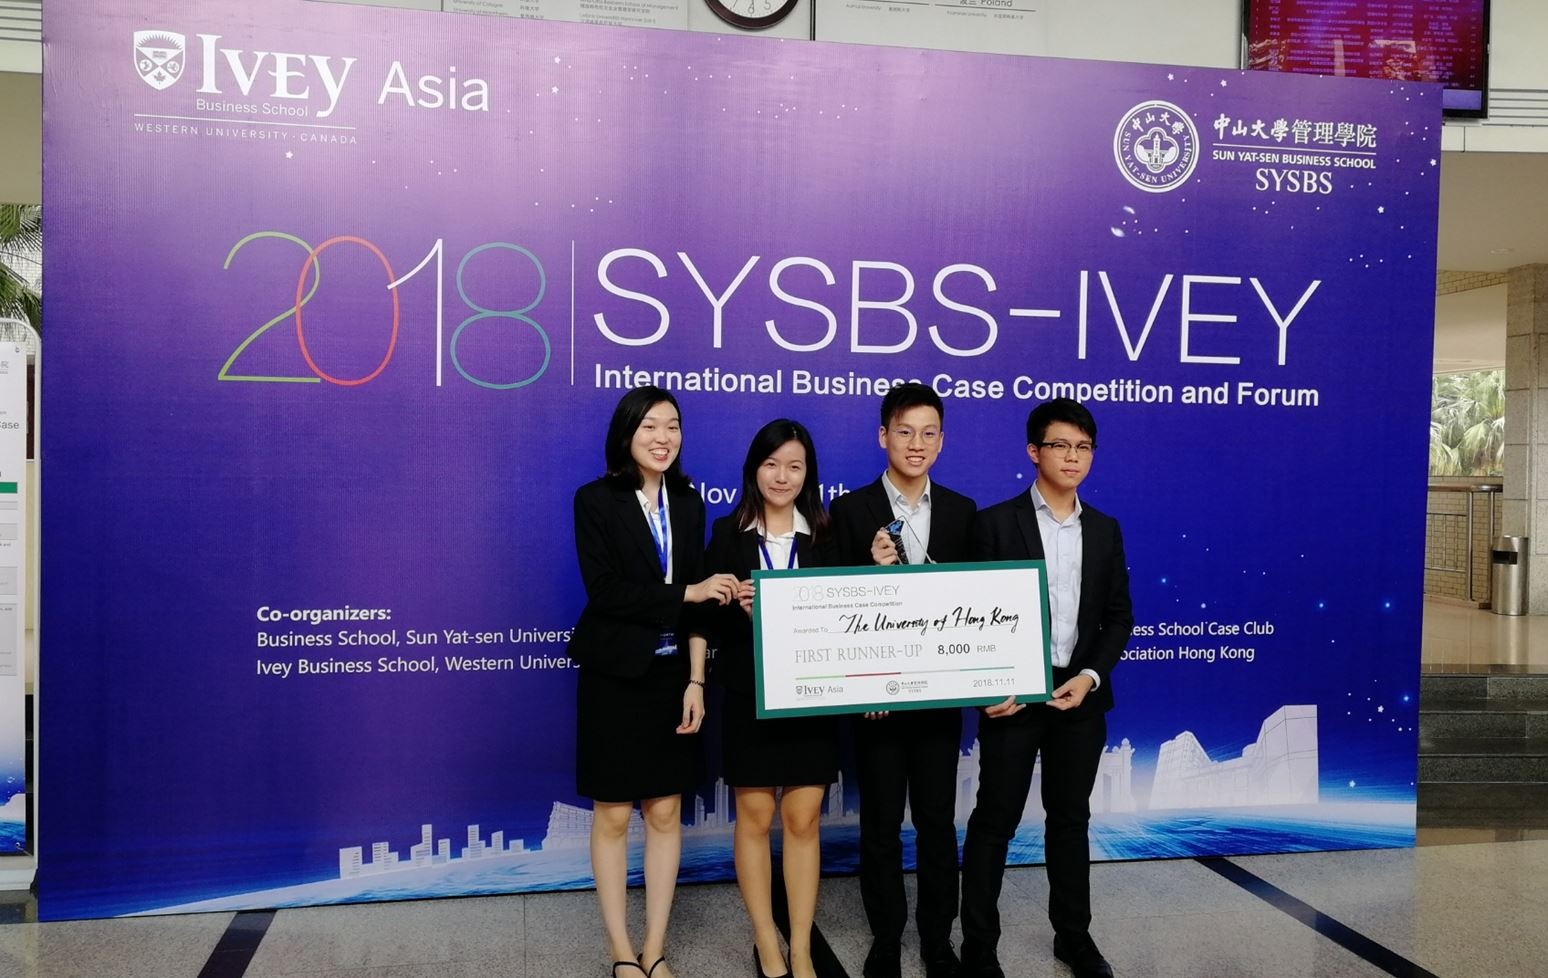 SYSBS-Ivey International Business Case Competition & Forum Event Highlights